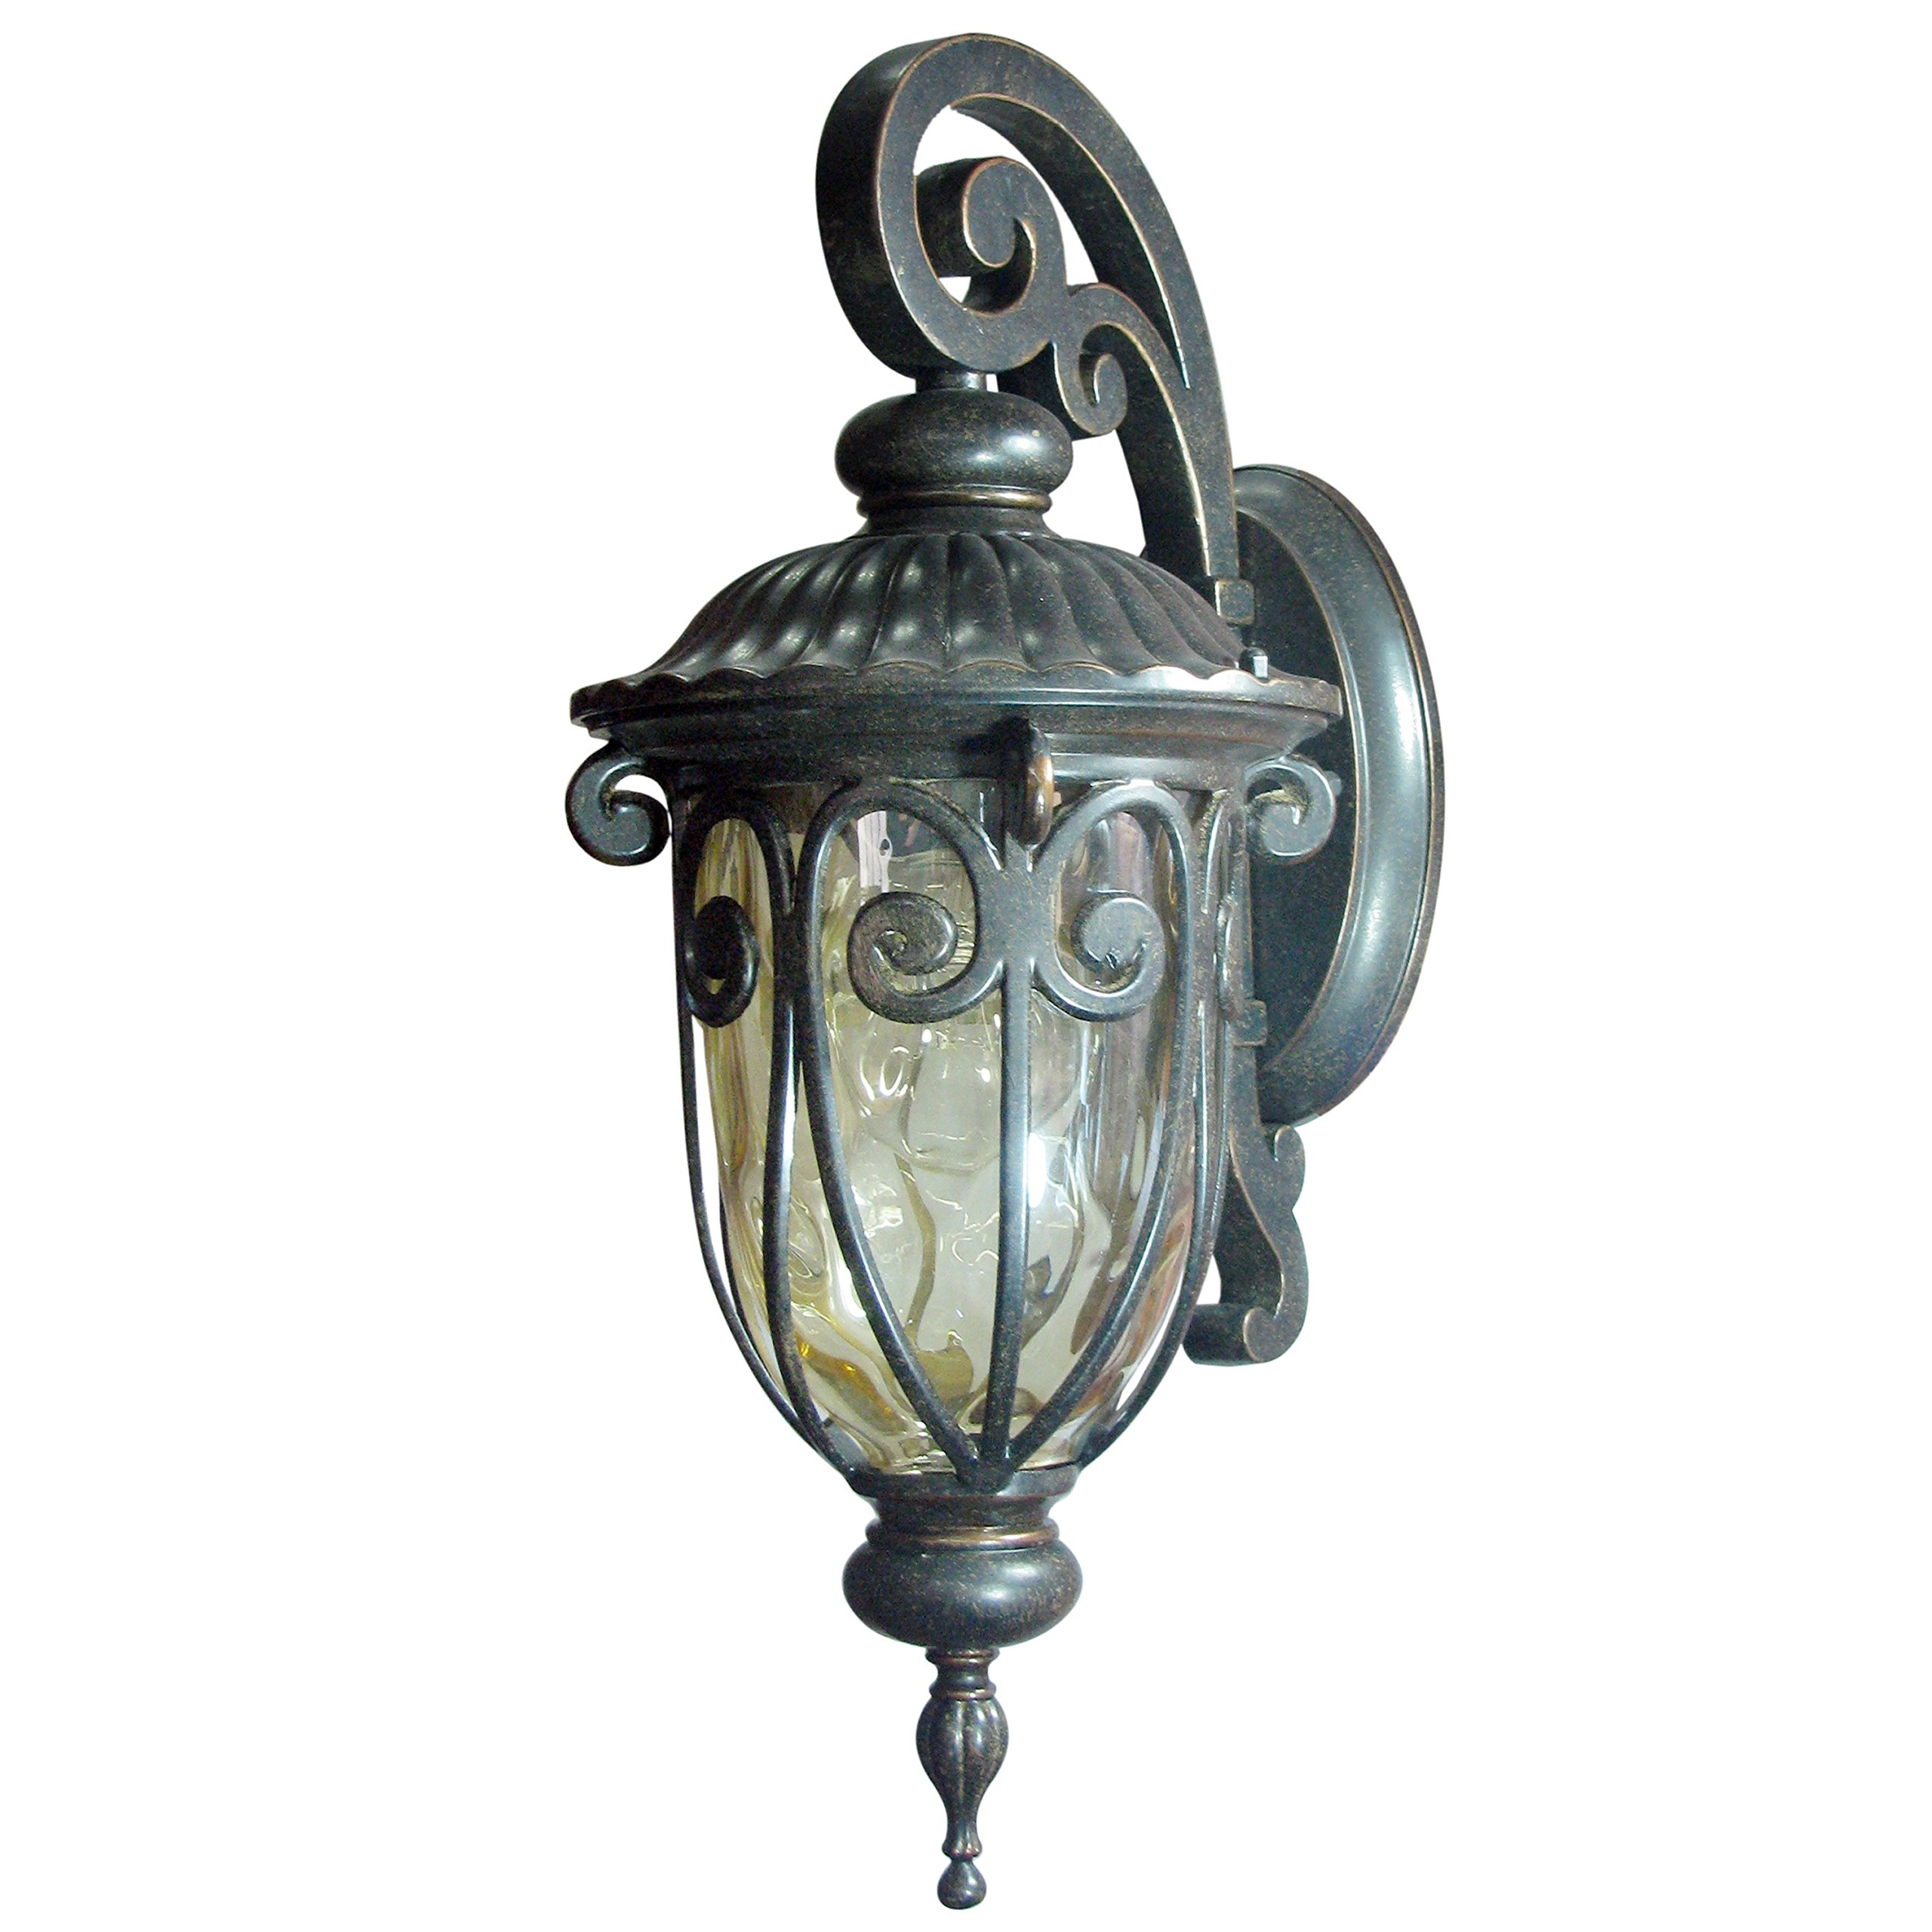 Y Decor EL591SOR Modern, Transitional, Traditional Hailee Exterior Outdoor Light Fixture Oil Rubbed Bronze Finish with Gold Stone Glass Small, Oil Rubbed Bronze, Brown by Y Decor